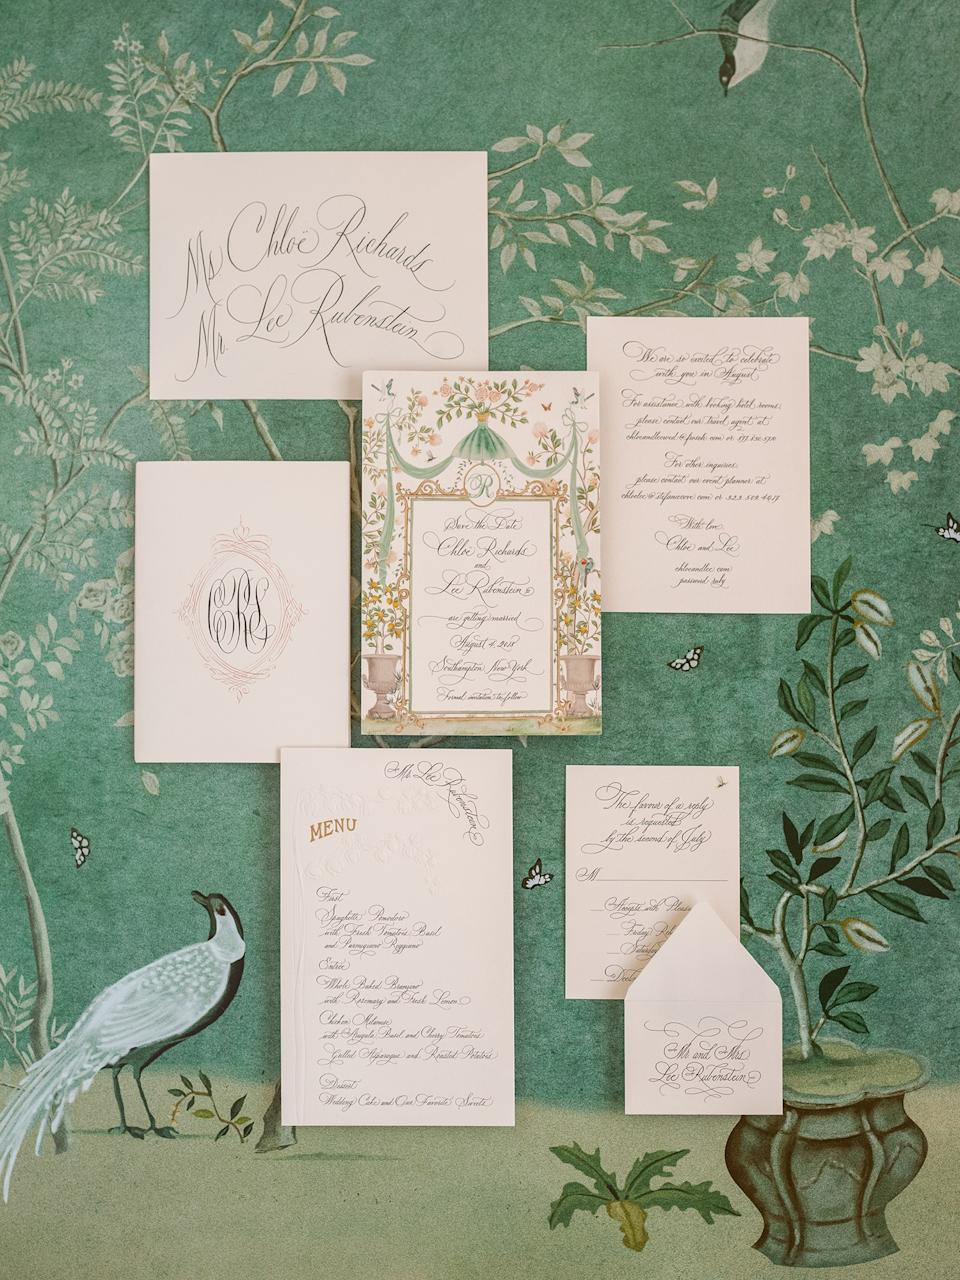 We worked with the incredibly talented team at De Gournay to create our save the dates, which helped inform the aesthetic of the paper items, ceremony, and reception decor.